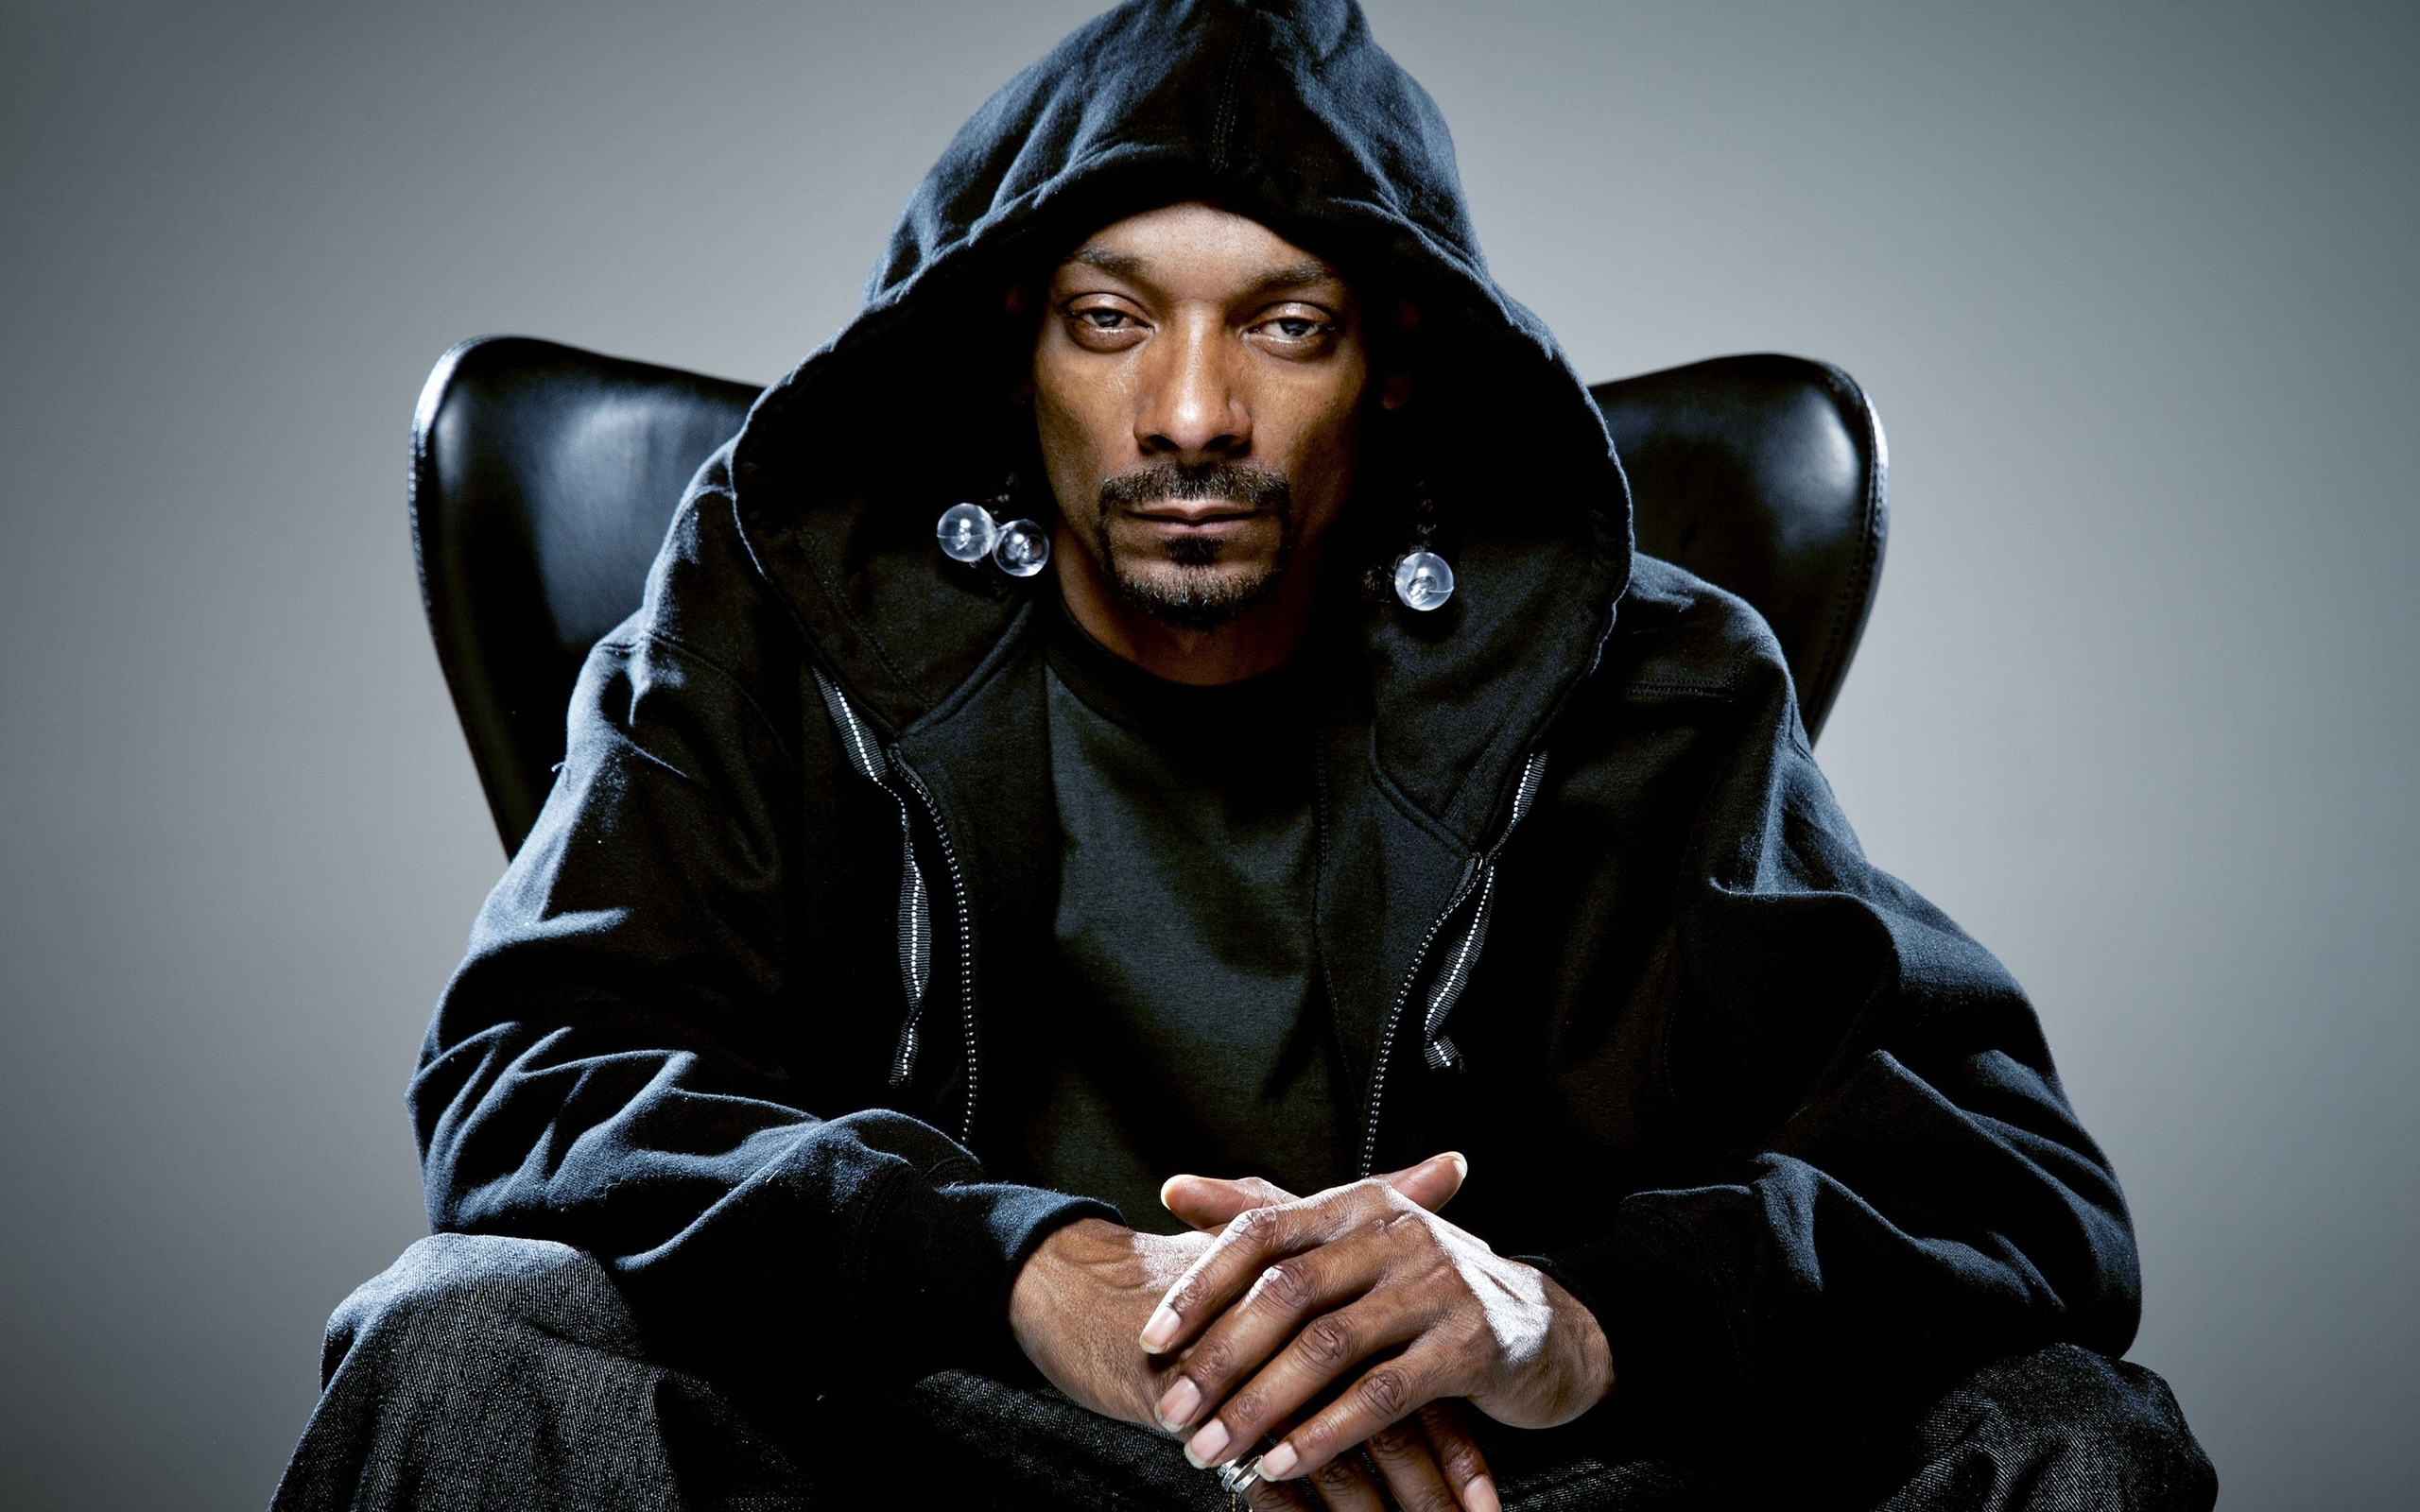 HQ Snoop Dogg Wallpapers | File 1859.02Kb